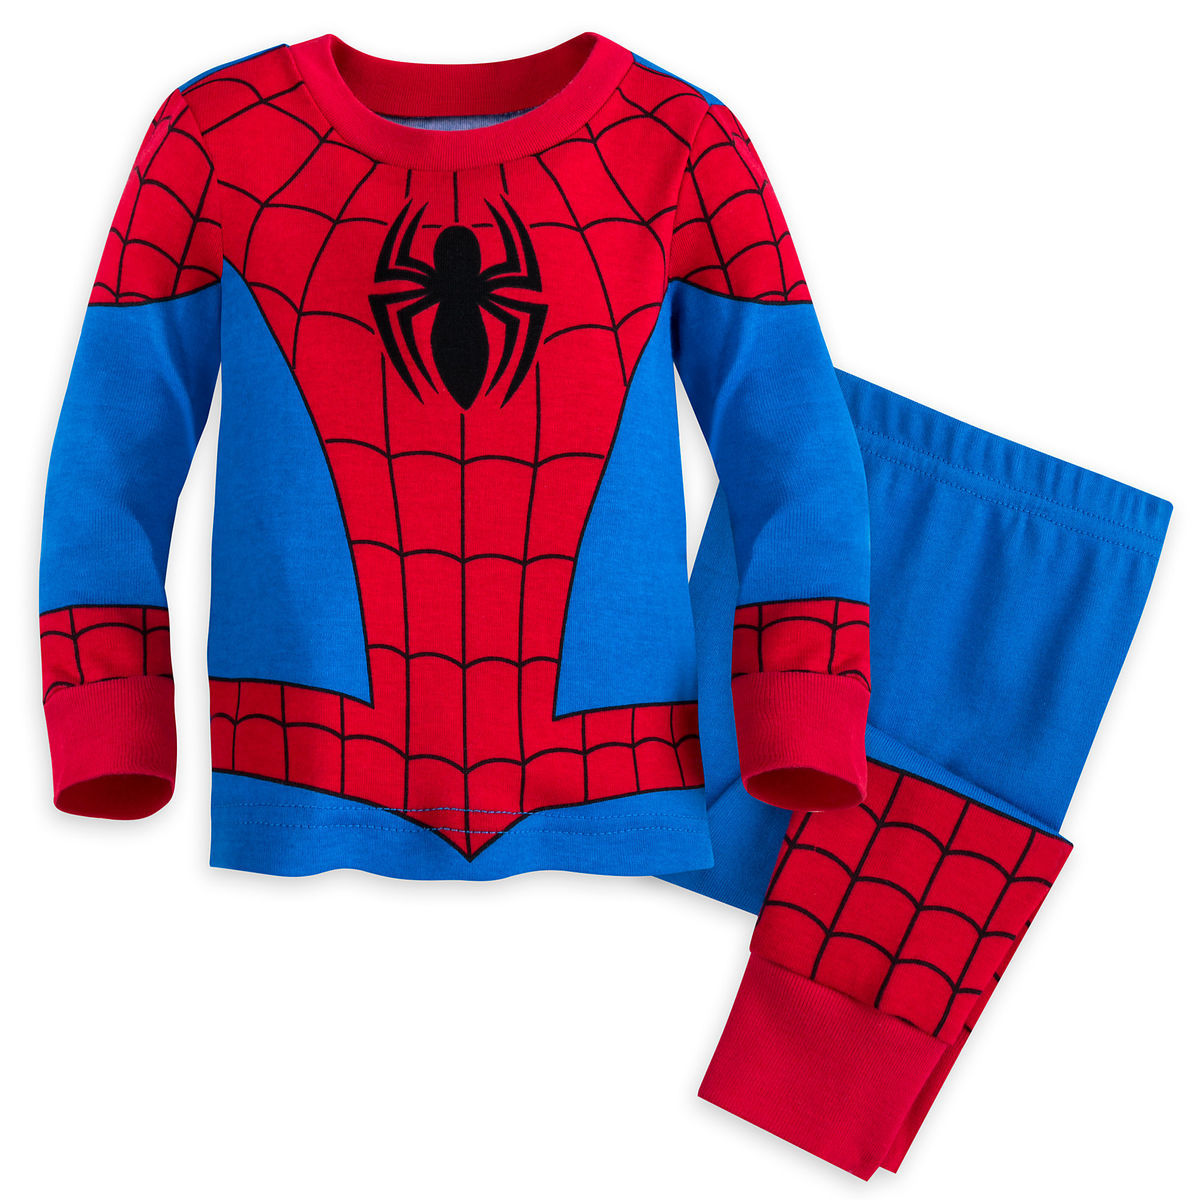 Product Image Of Spider Man Pj Pals Set Baby 1